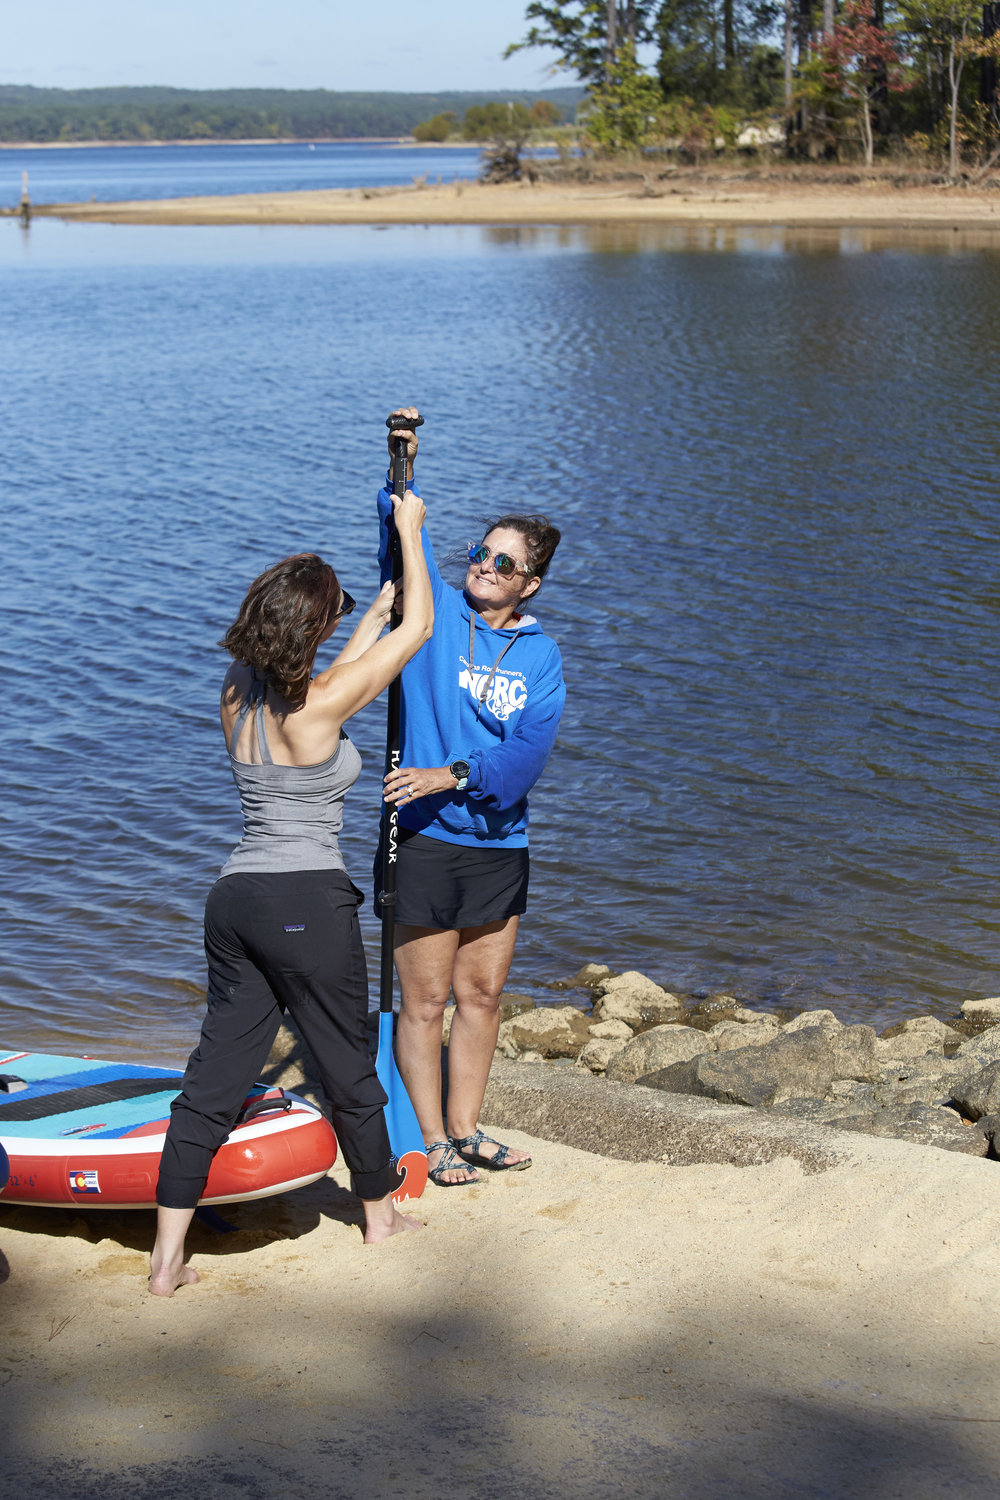 Stand Up Paddleboard (SUP) classes, Jordan Lake, NC